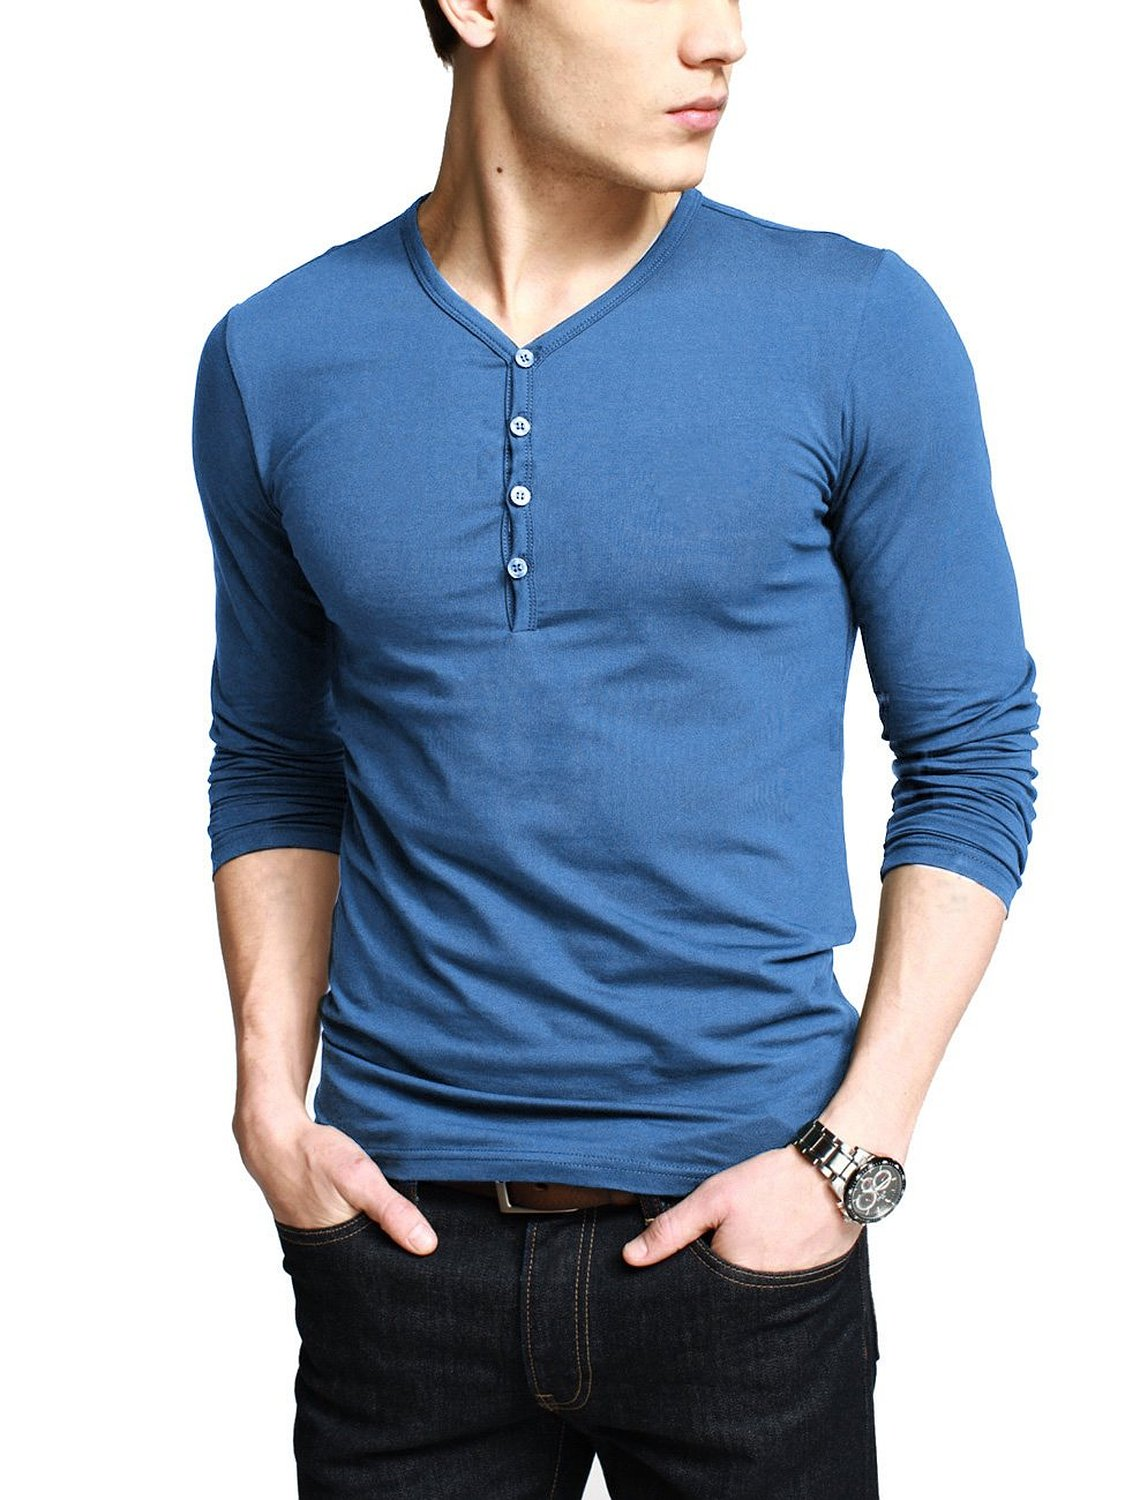 iLoveSIA Mens Henley T-shirts Long Sleeve With Button Placket at Amazon Men's Clothing store